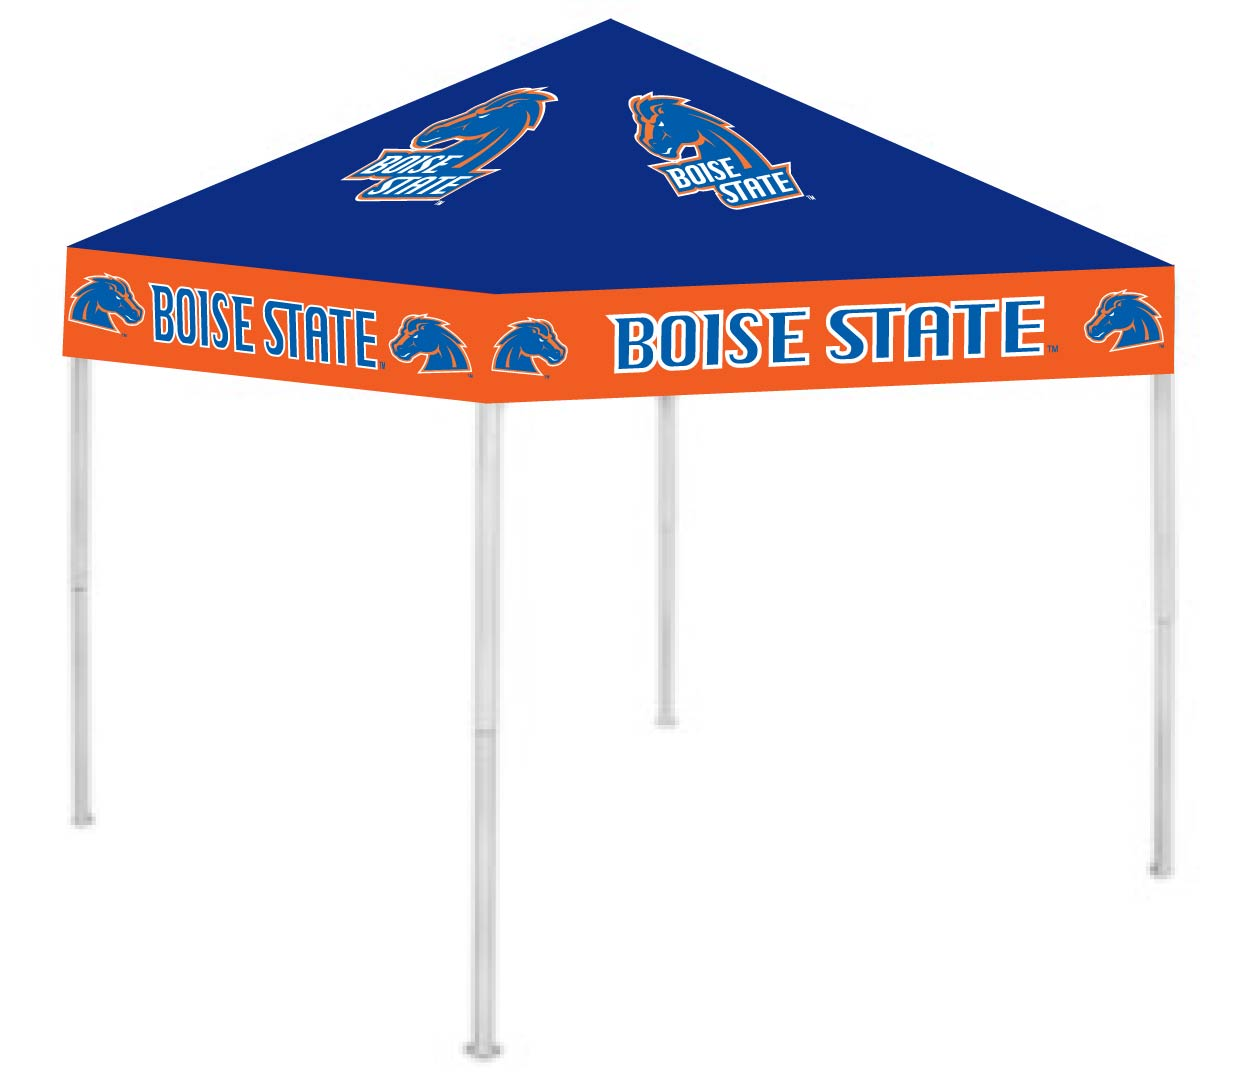 Boise State Broncos 9′ x 9′ Ultimate Tailgate Shade Canopy / Tent